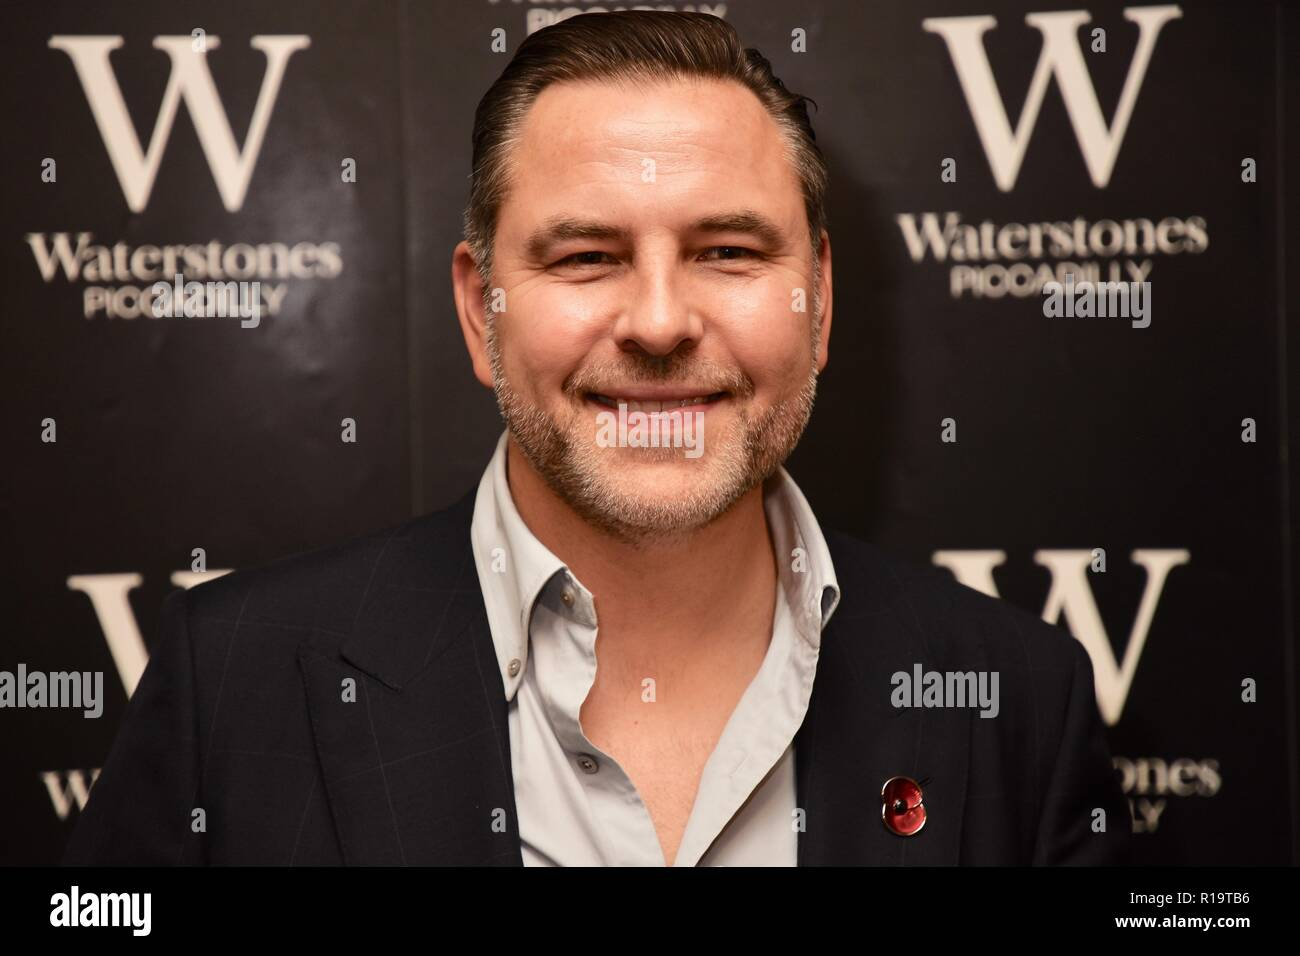 """London, UK. 10th Nov, 2018. David Walliams, Presscall and Booksigning for his newest novel """"The Ice Monster"""",Waterstones Piccadilly,203-206 Piccadilly,London.UK Credit: michael melia/Alamy Live News Stock Photo"""